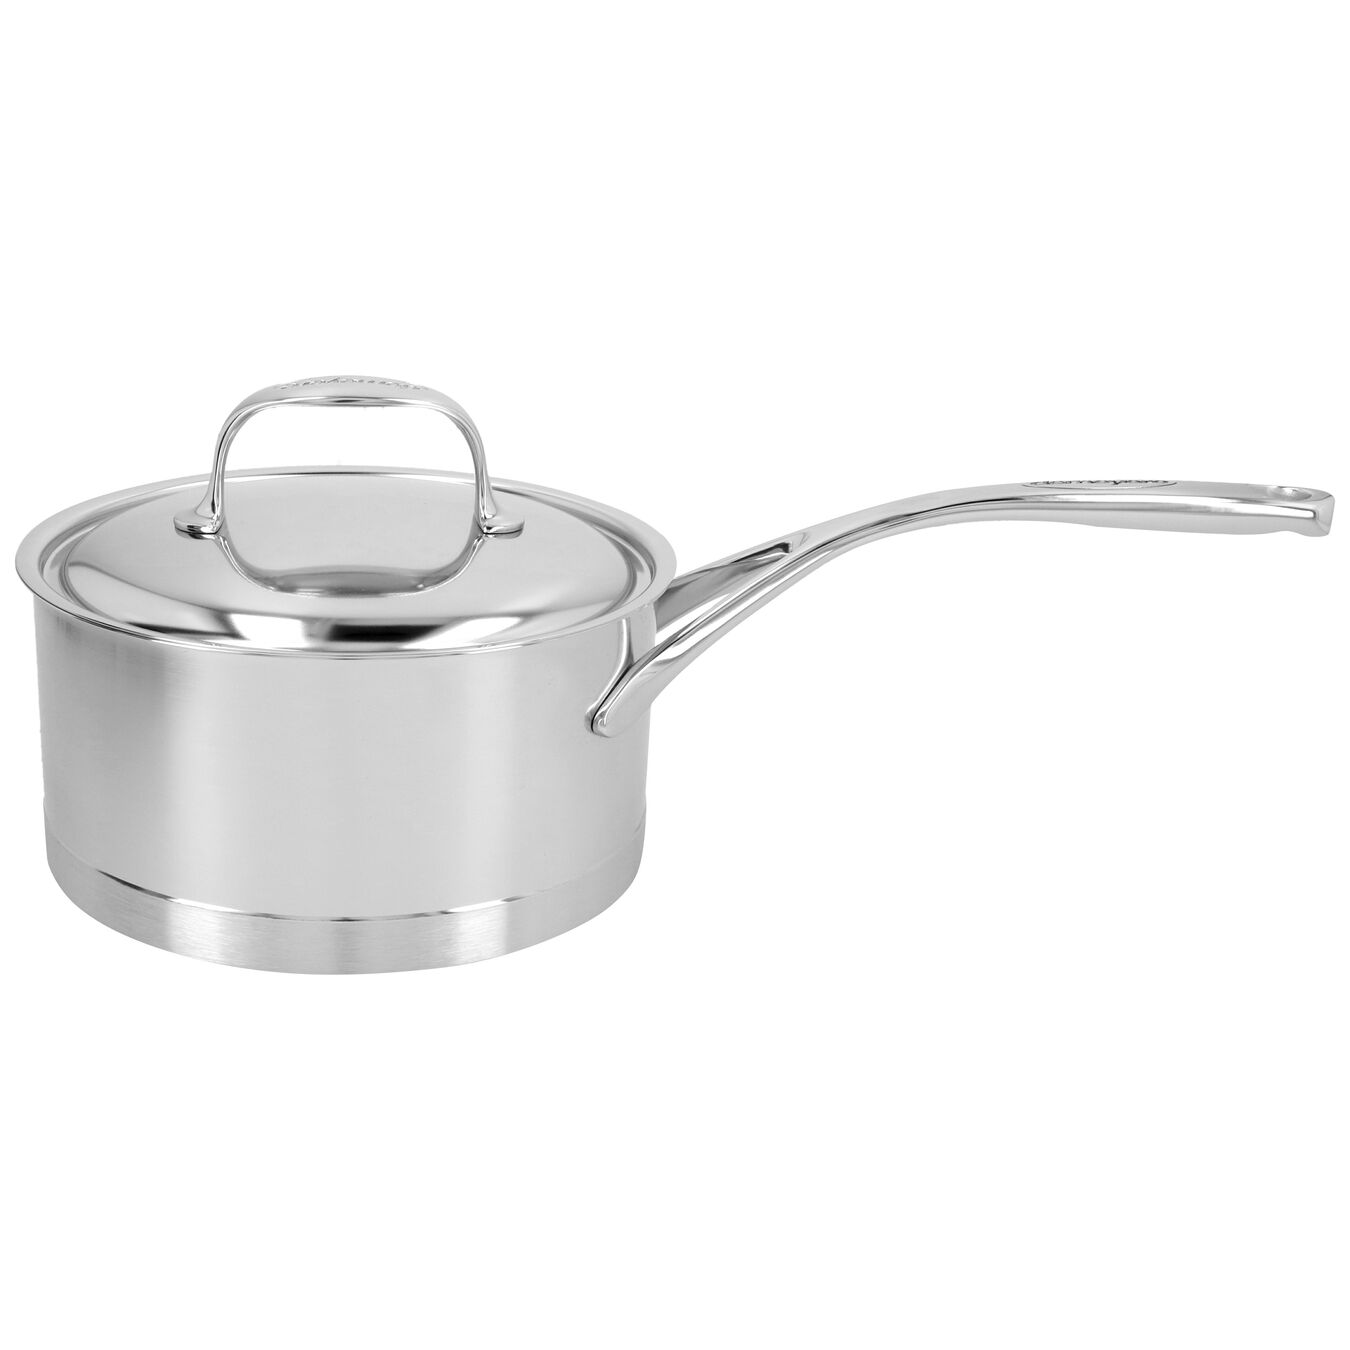 2.25 qt Sauce pan with lid, 18/10 Stainless Steel ,,large 1